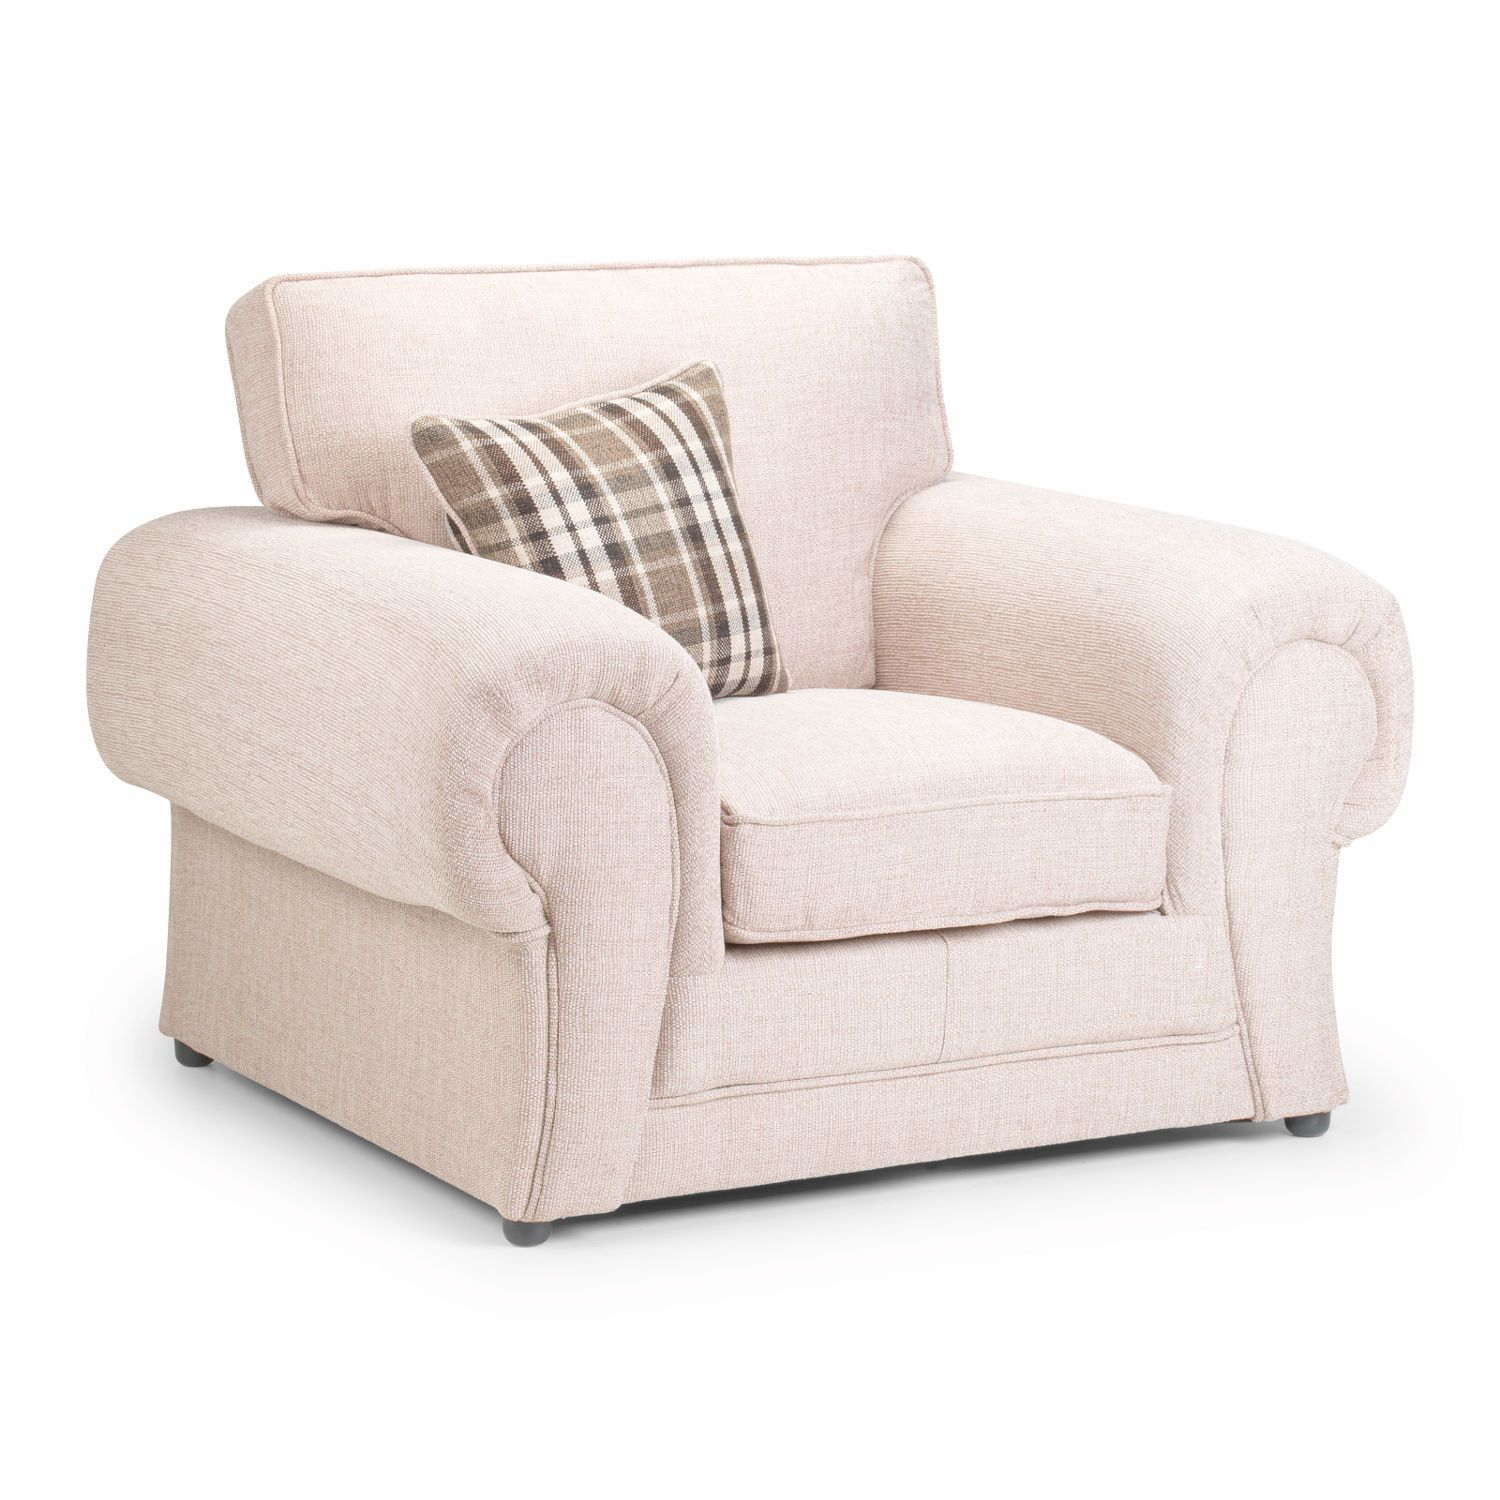 Best Armchairs Armchairs Cheap Uk Armchairs Armchairs For 640 x 480